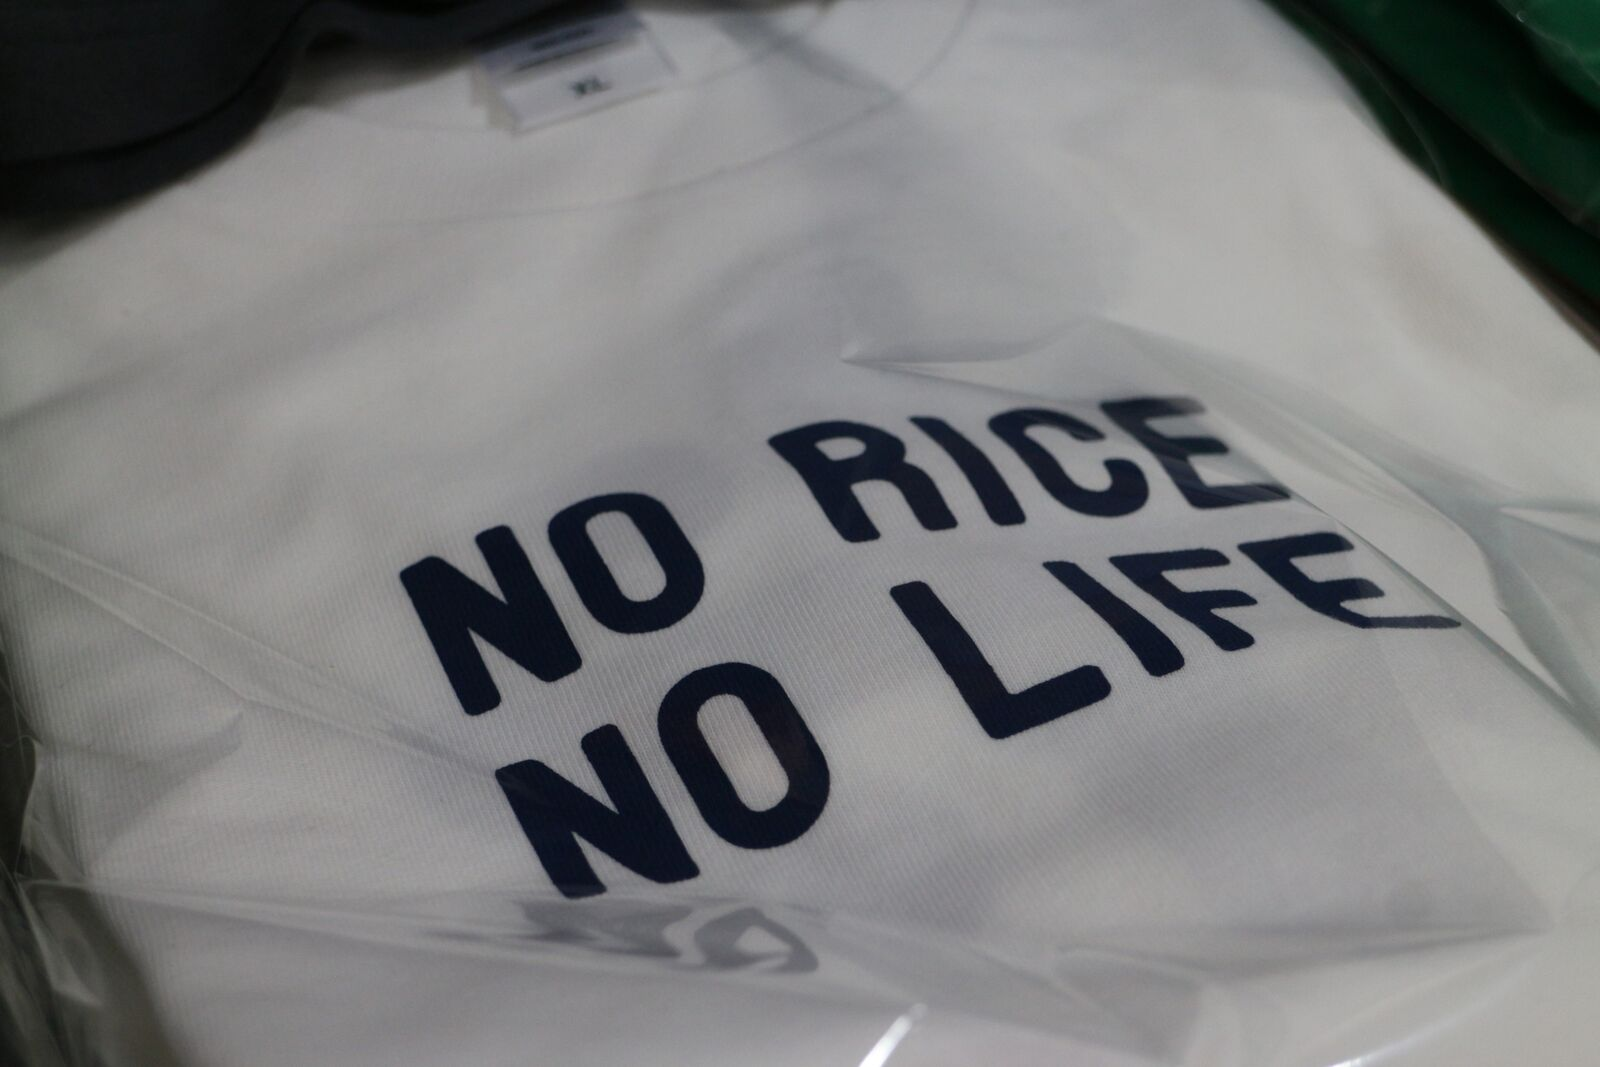 NO RICE NO LIFETシャツ